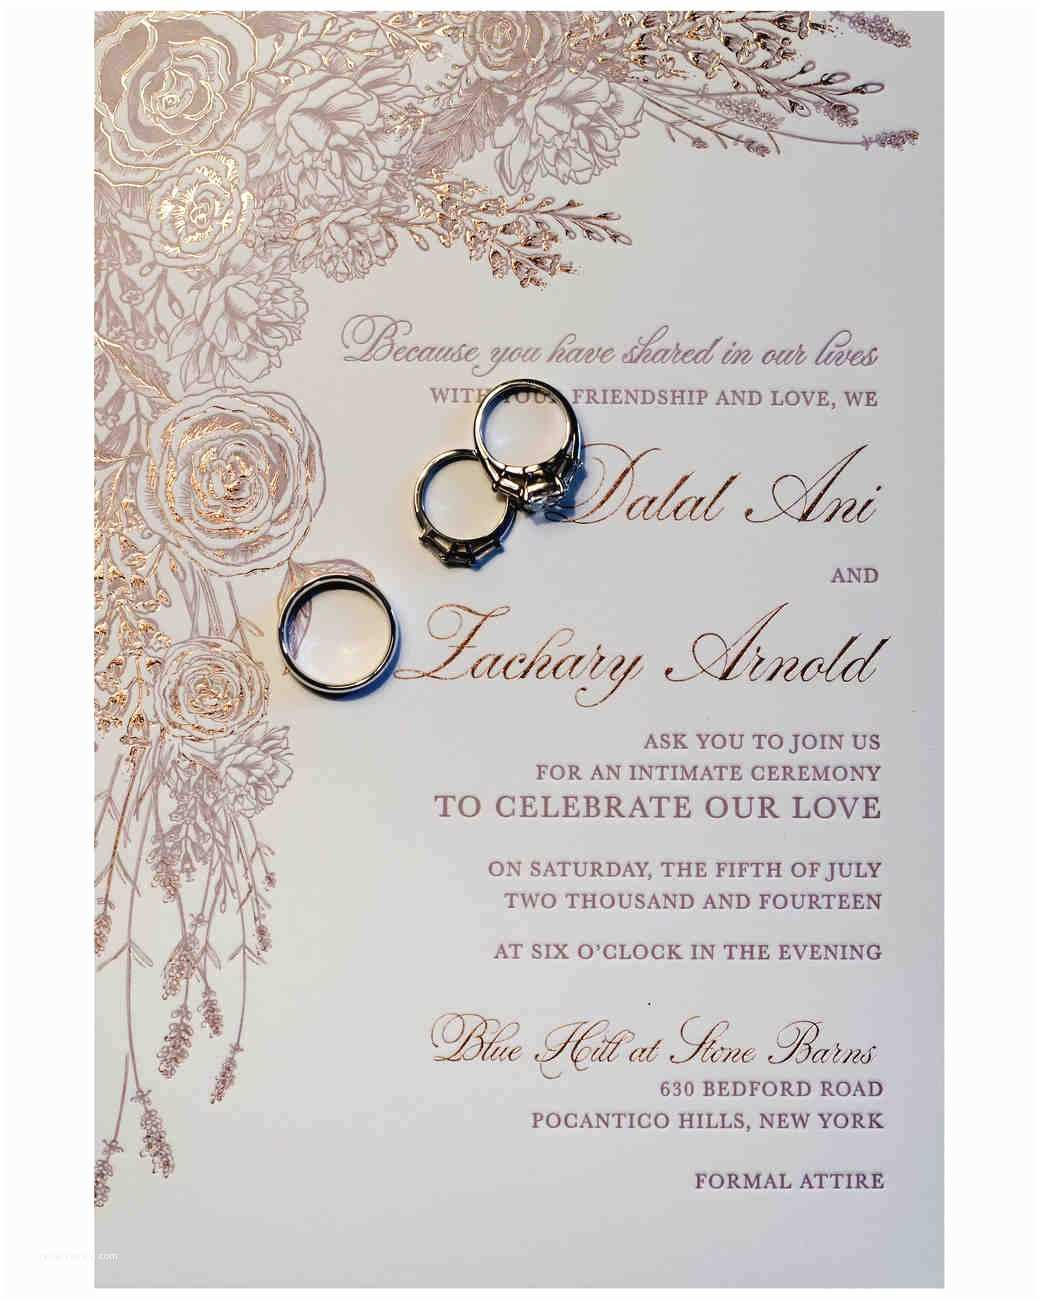 Wedding Invitation Advice Paper Protocol Experts their Best Wedding